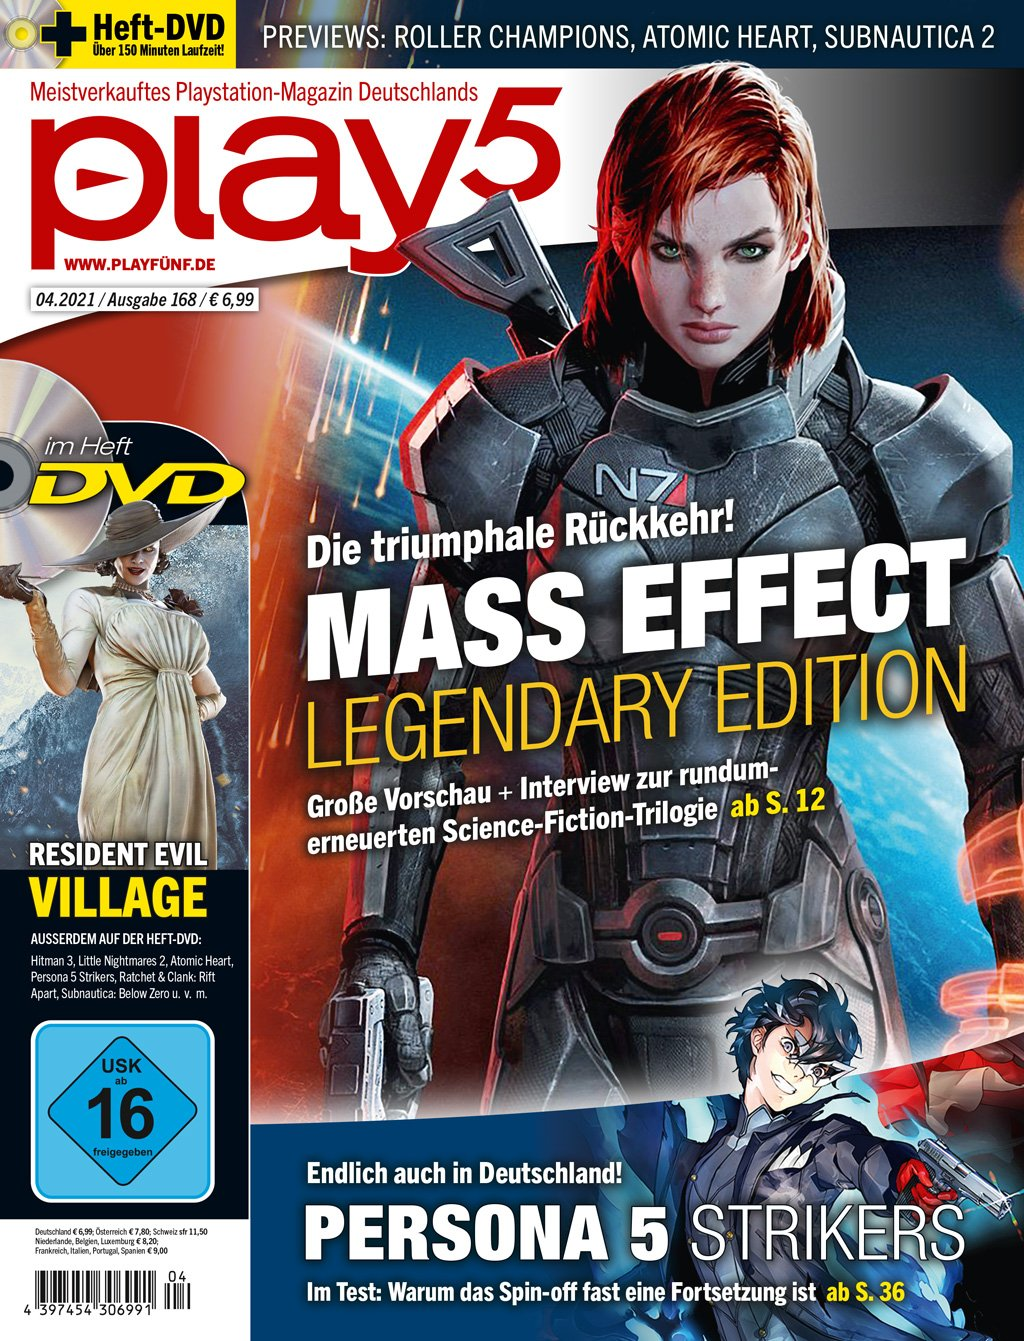 play5 04/21 with Mass Effect: Legendary Edition and more!